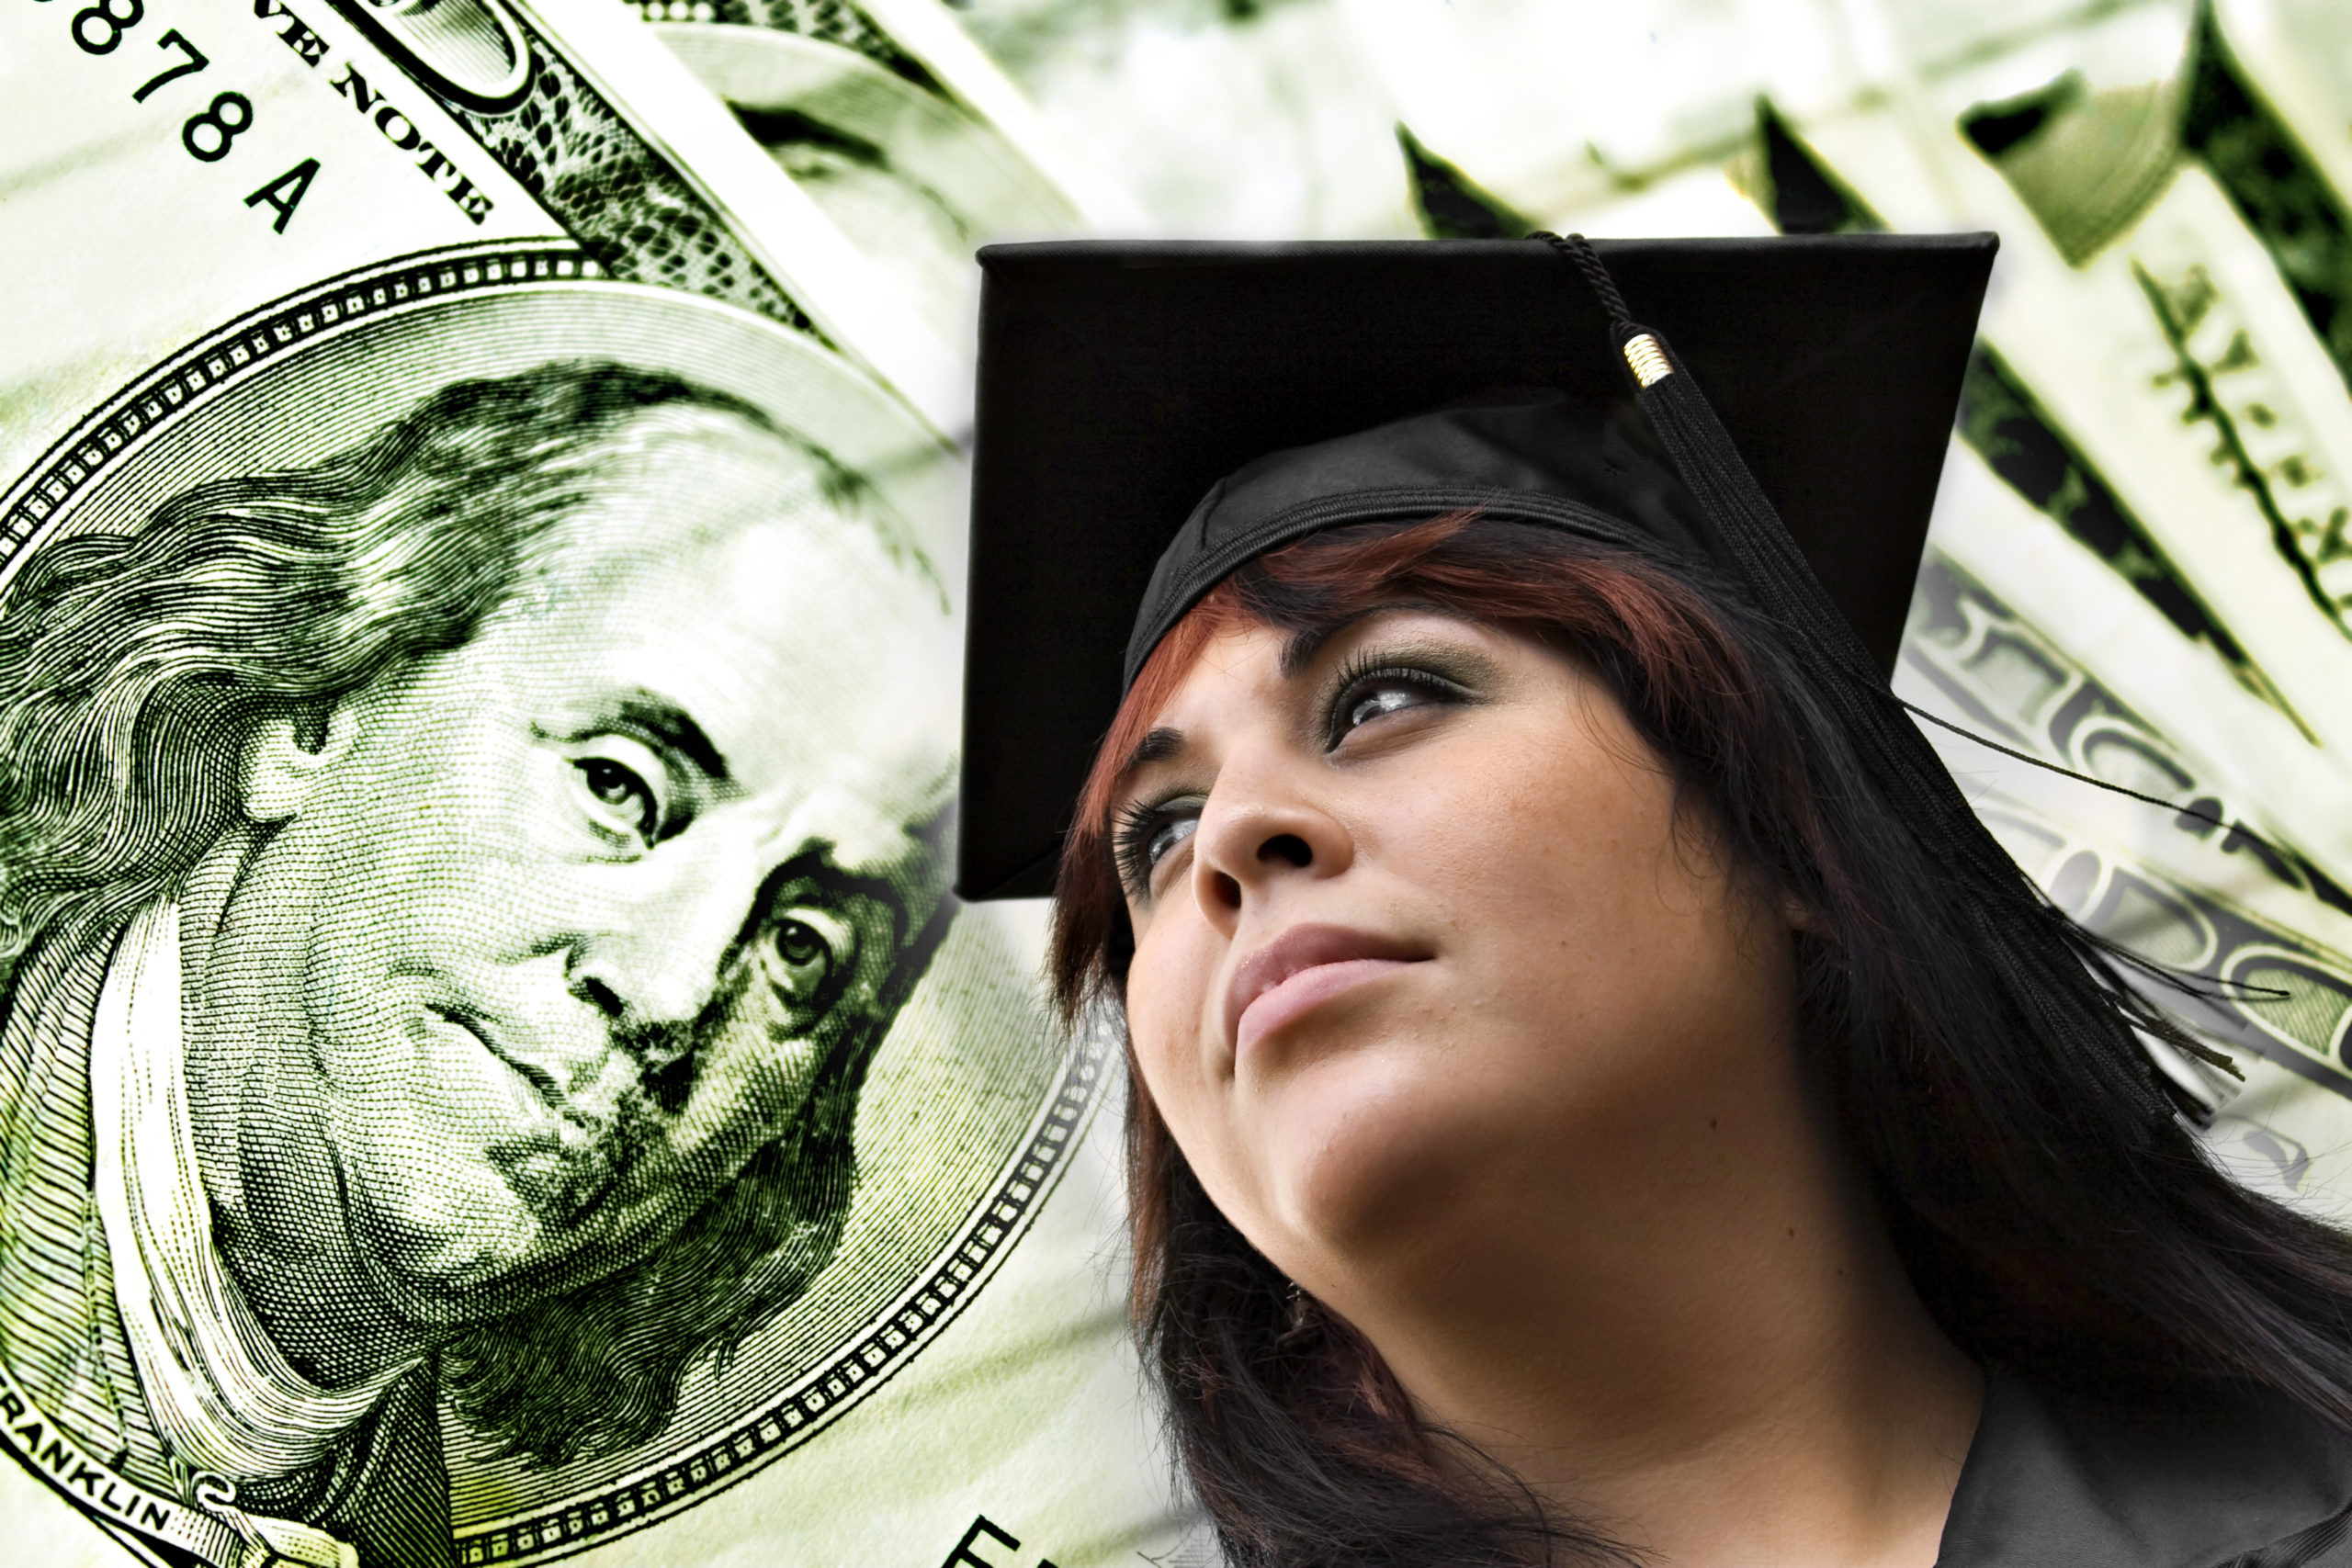 More Can Benefit From Student Loan Discharge Program Designed to Help Those With Disabilities